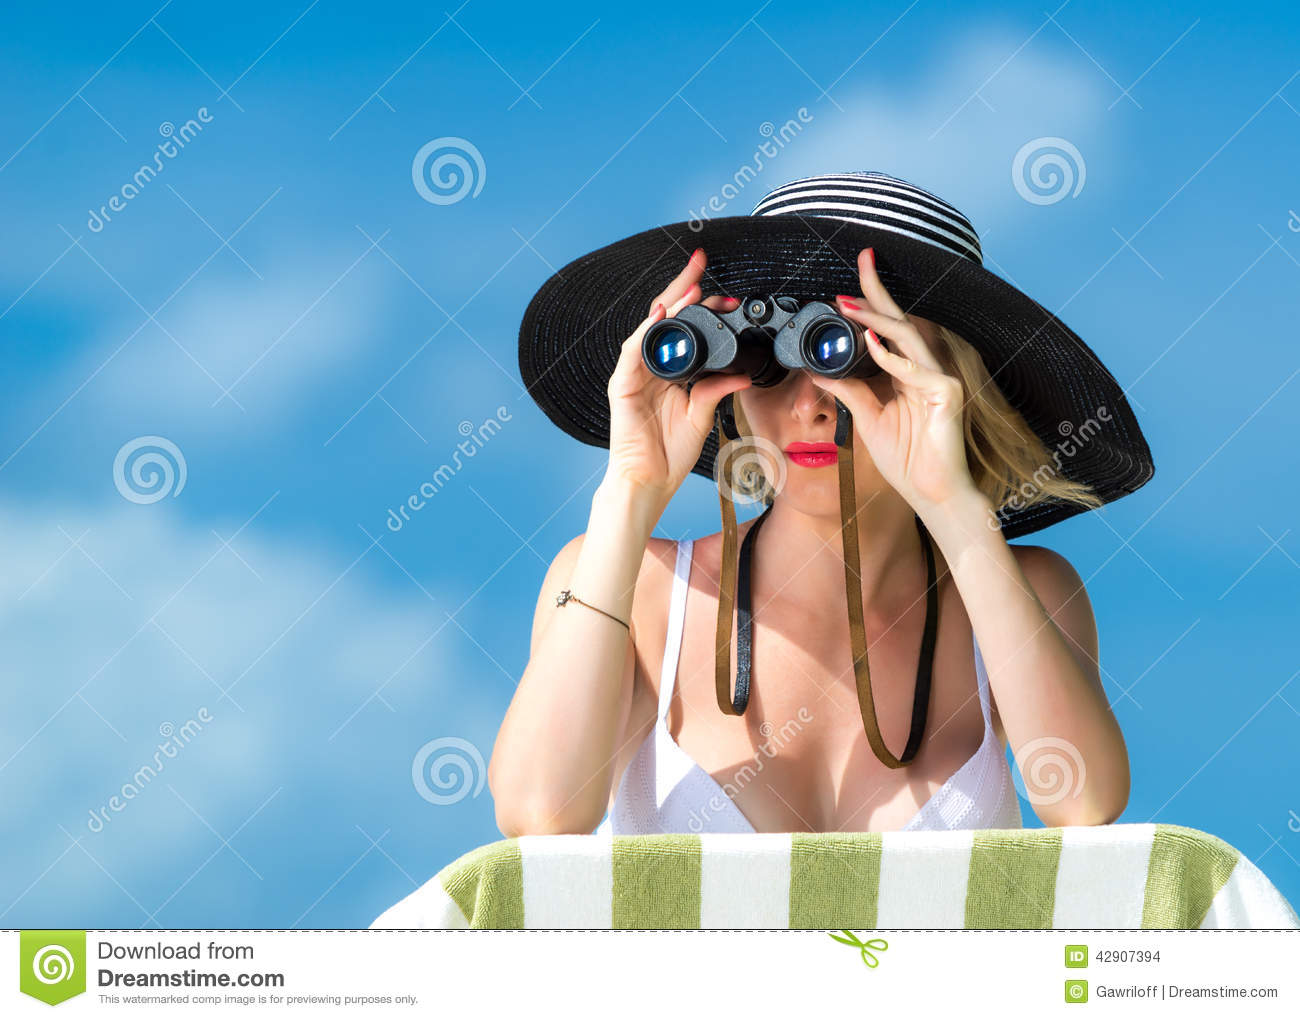 Bikini woman with binoculars